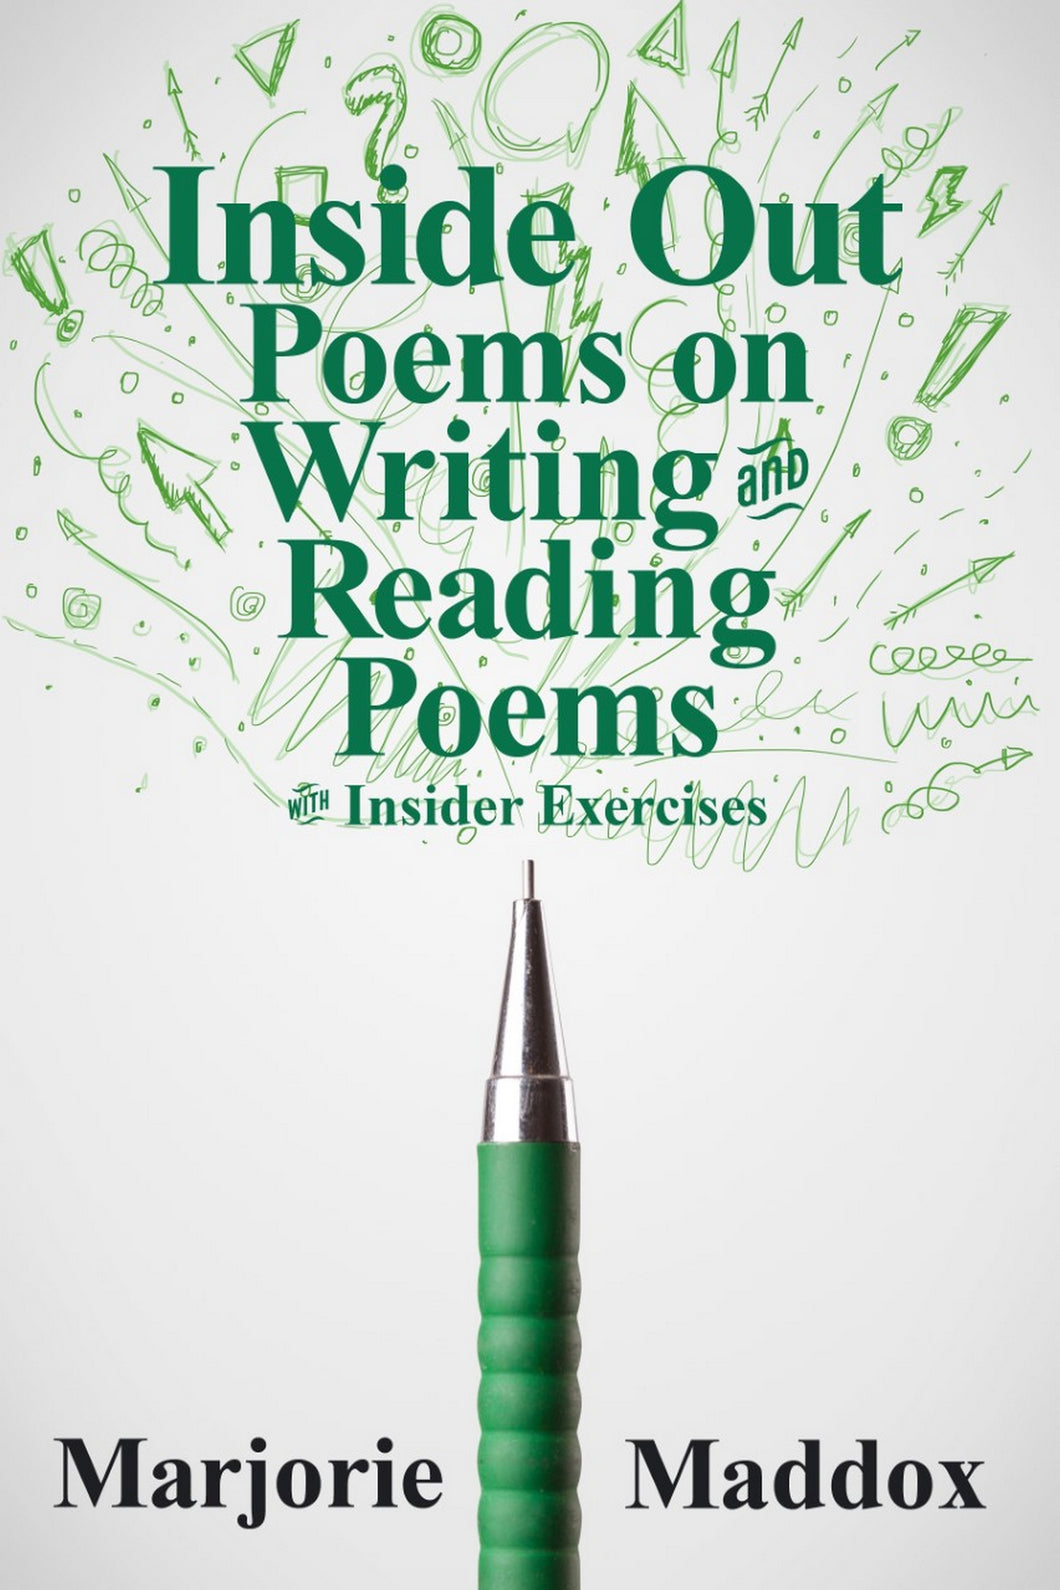 Inside Out: Poems on Writing and Reading Poems